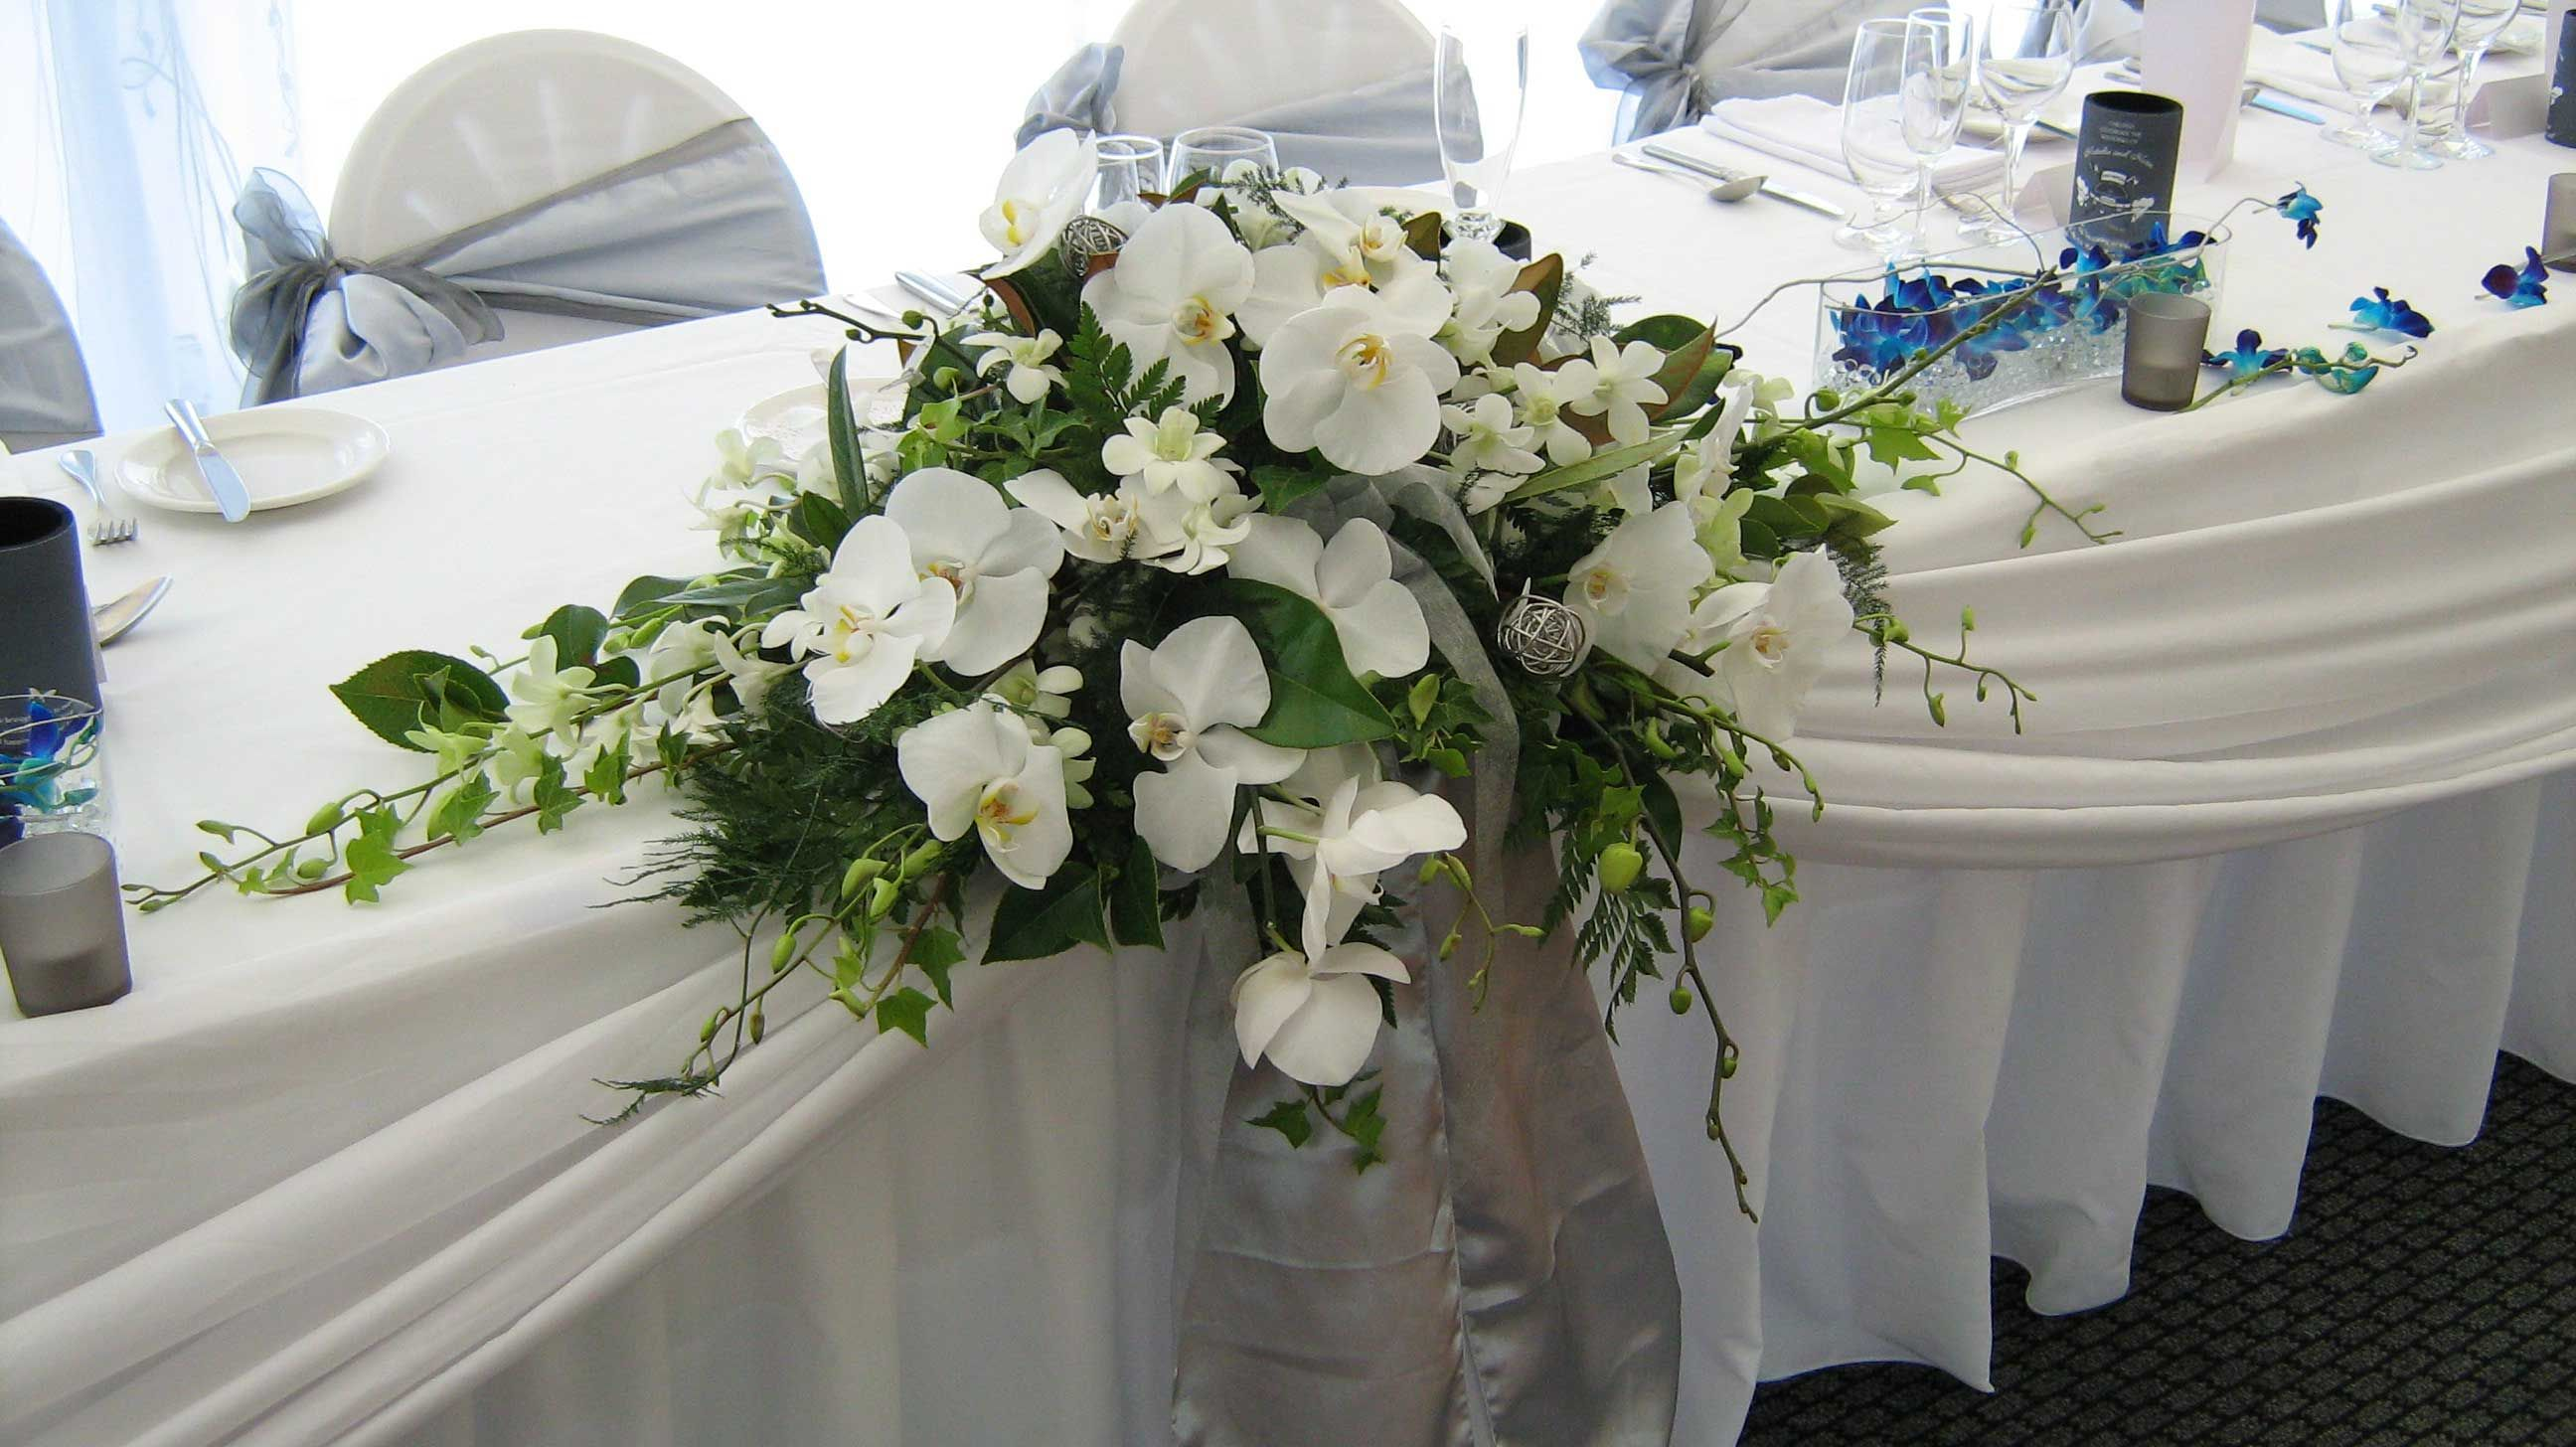 ideas for flower arrangements at wedding flower arrangements ideas for flower arrangements at weddings